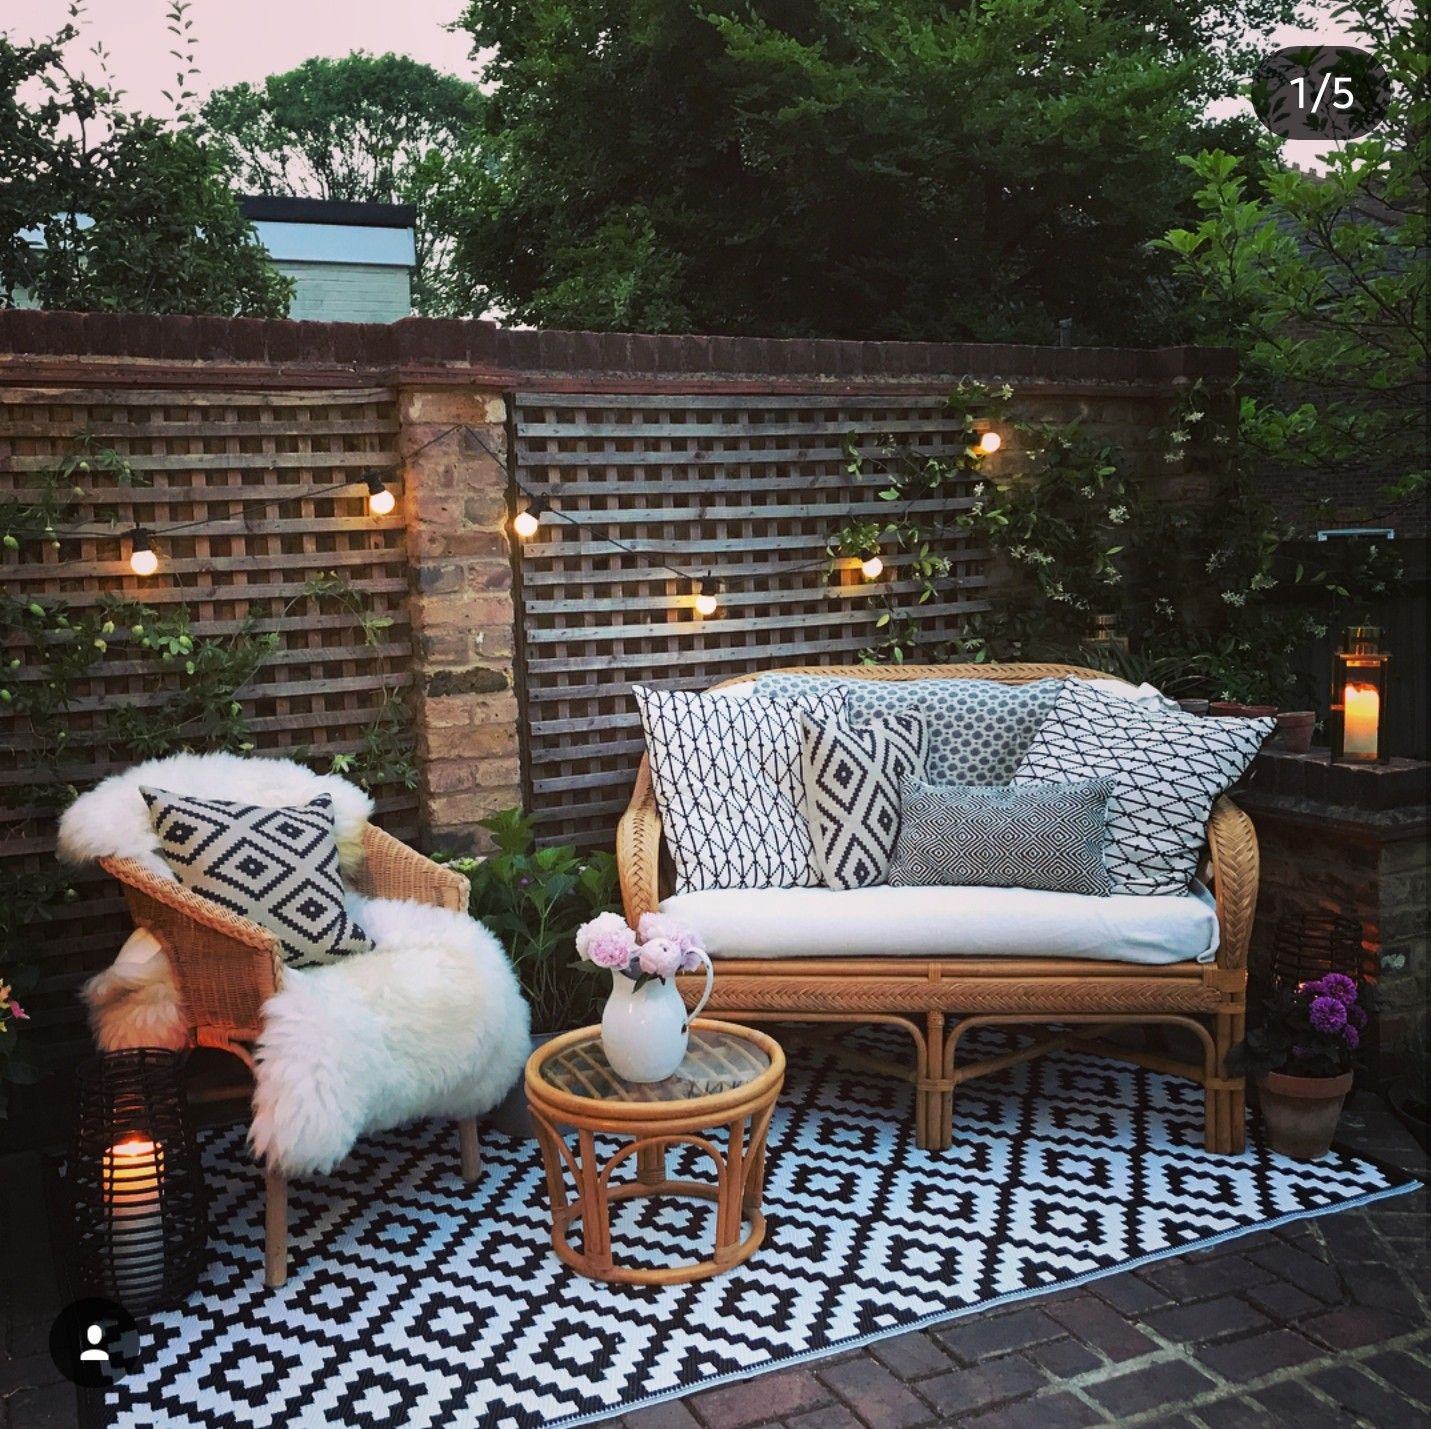 Pin De M E G A N En Decor Outdoors Pinterest Terrazas Fotos  ~ Decoraciã³n De Patios Exteriores